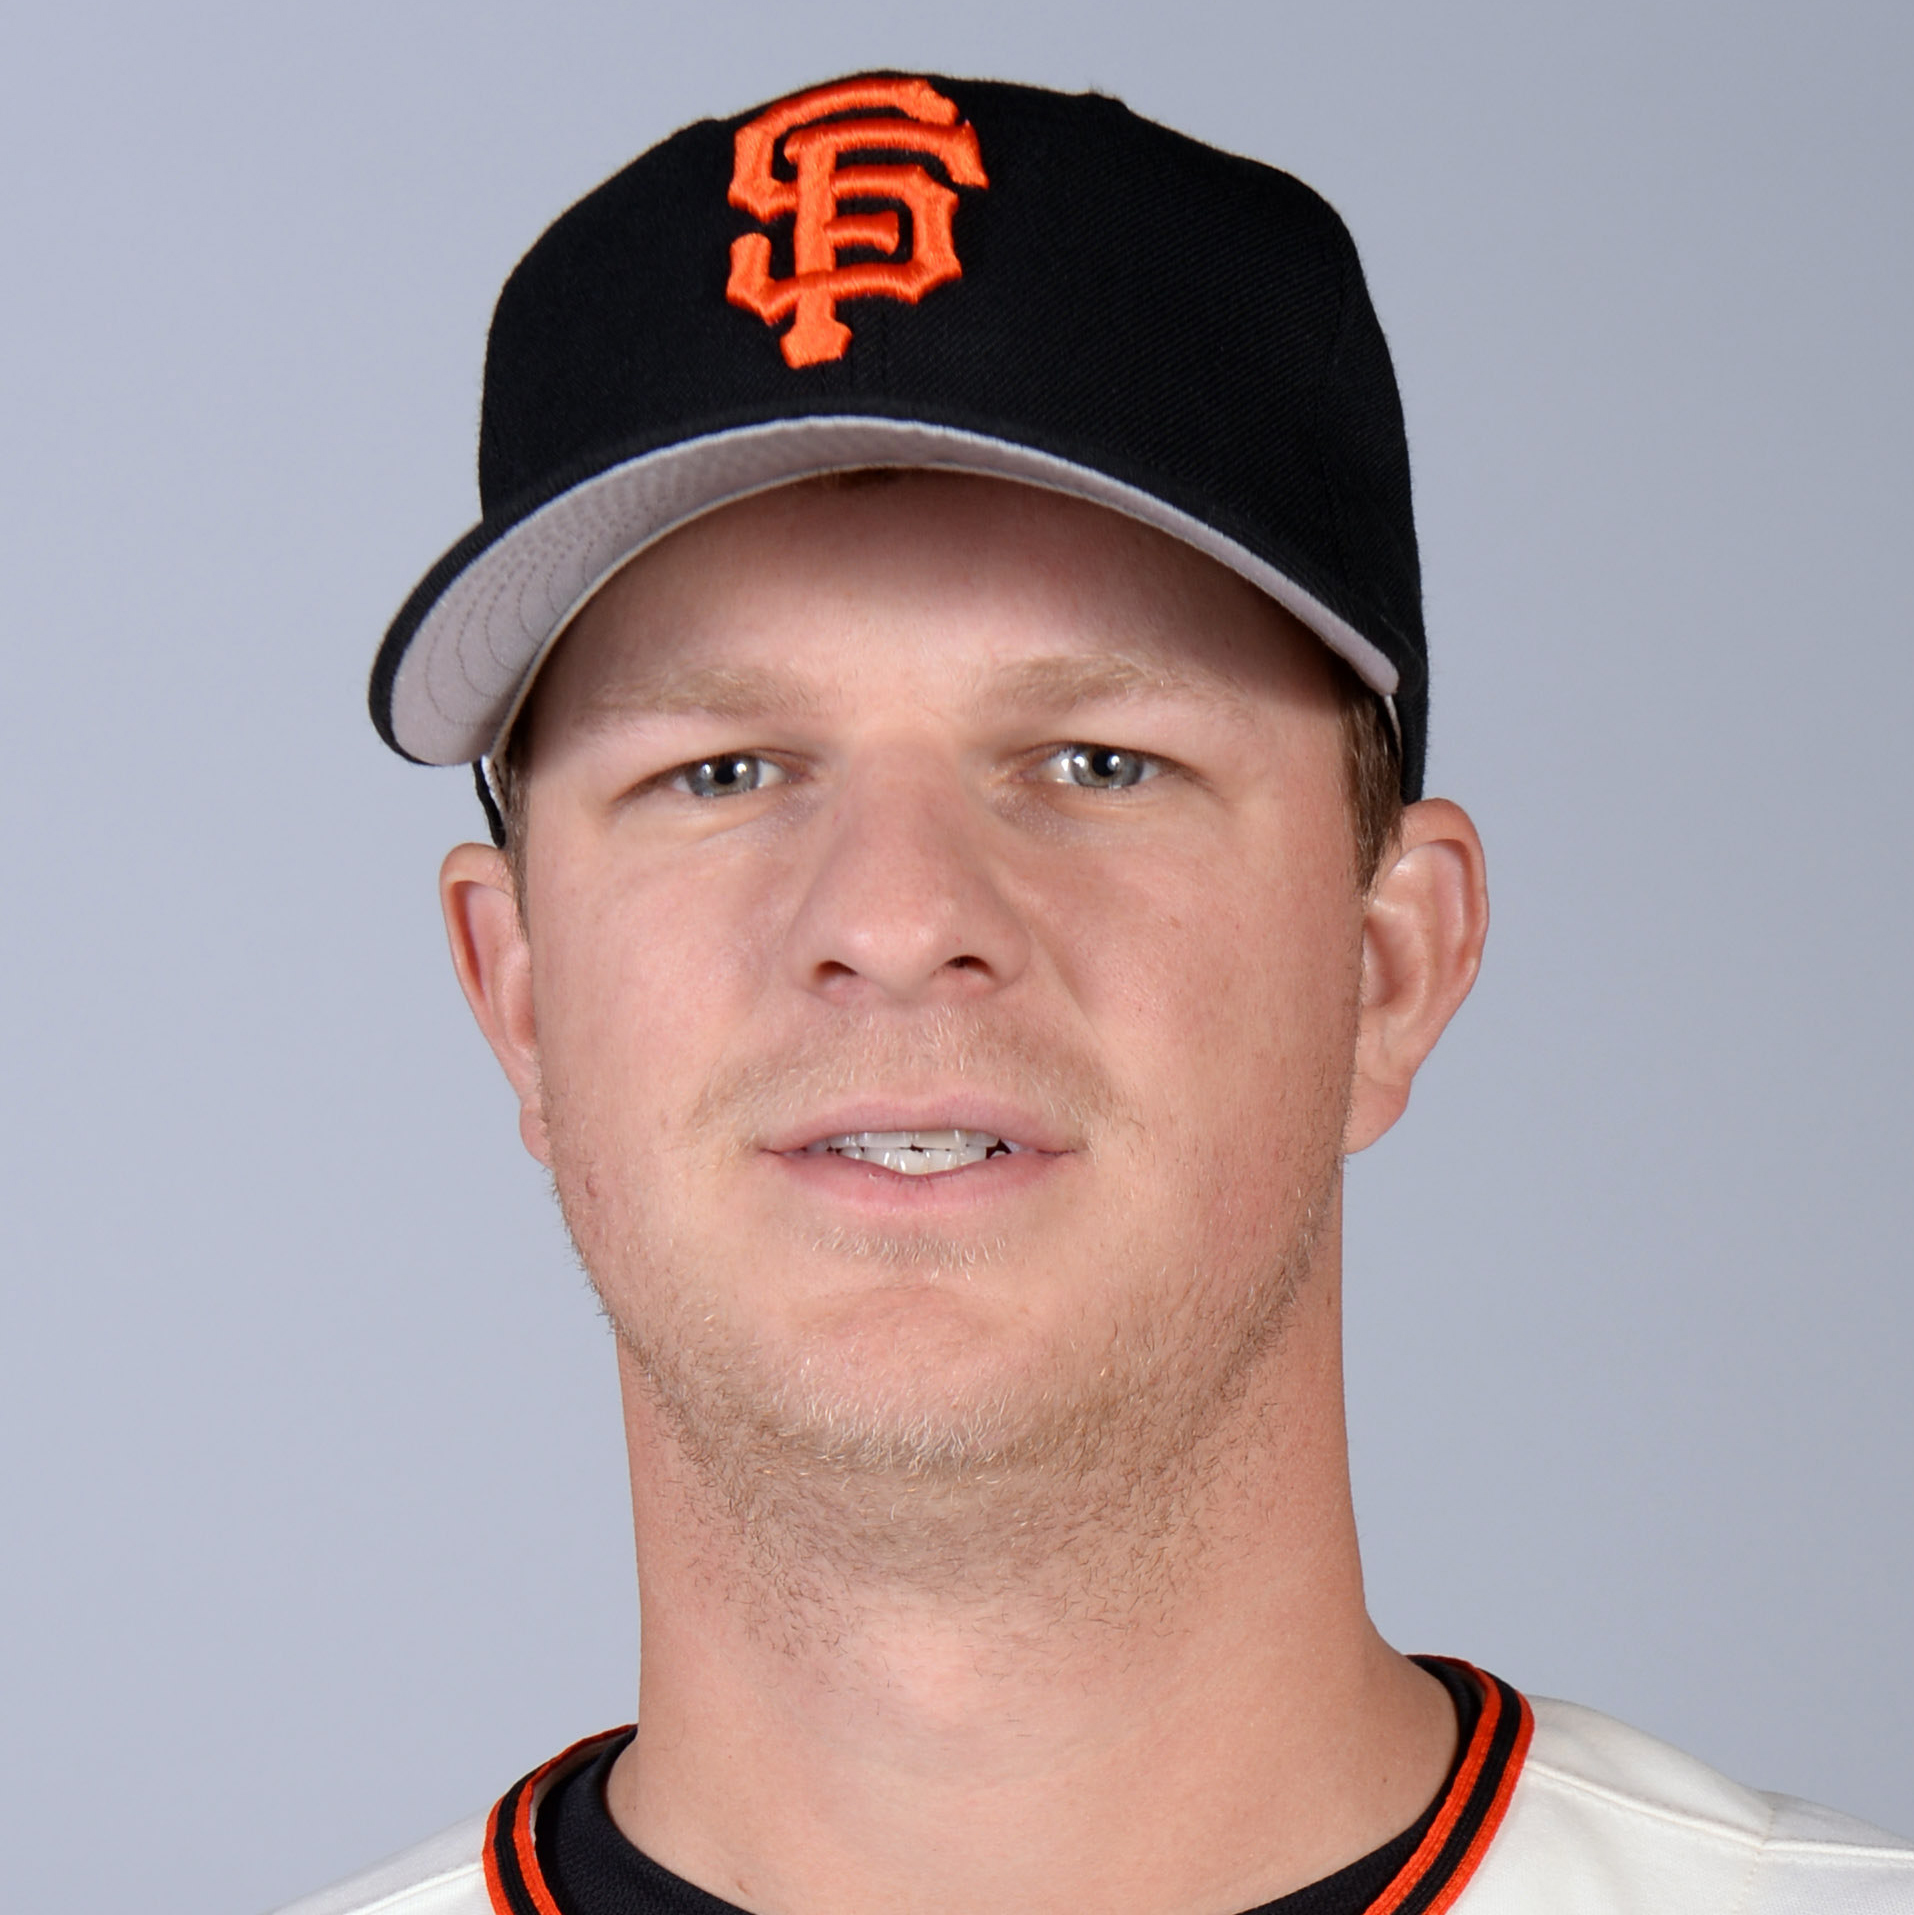 Matt Cain (R) Headshot